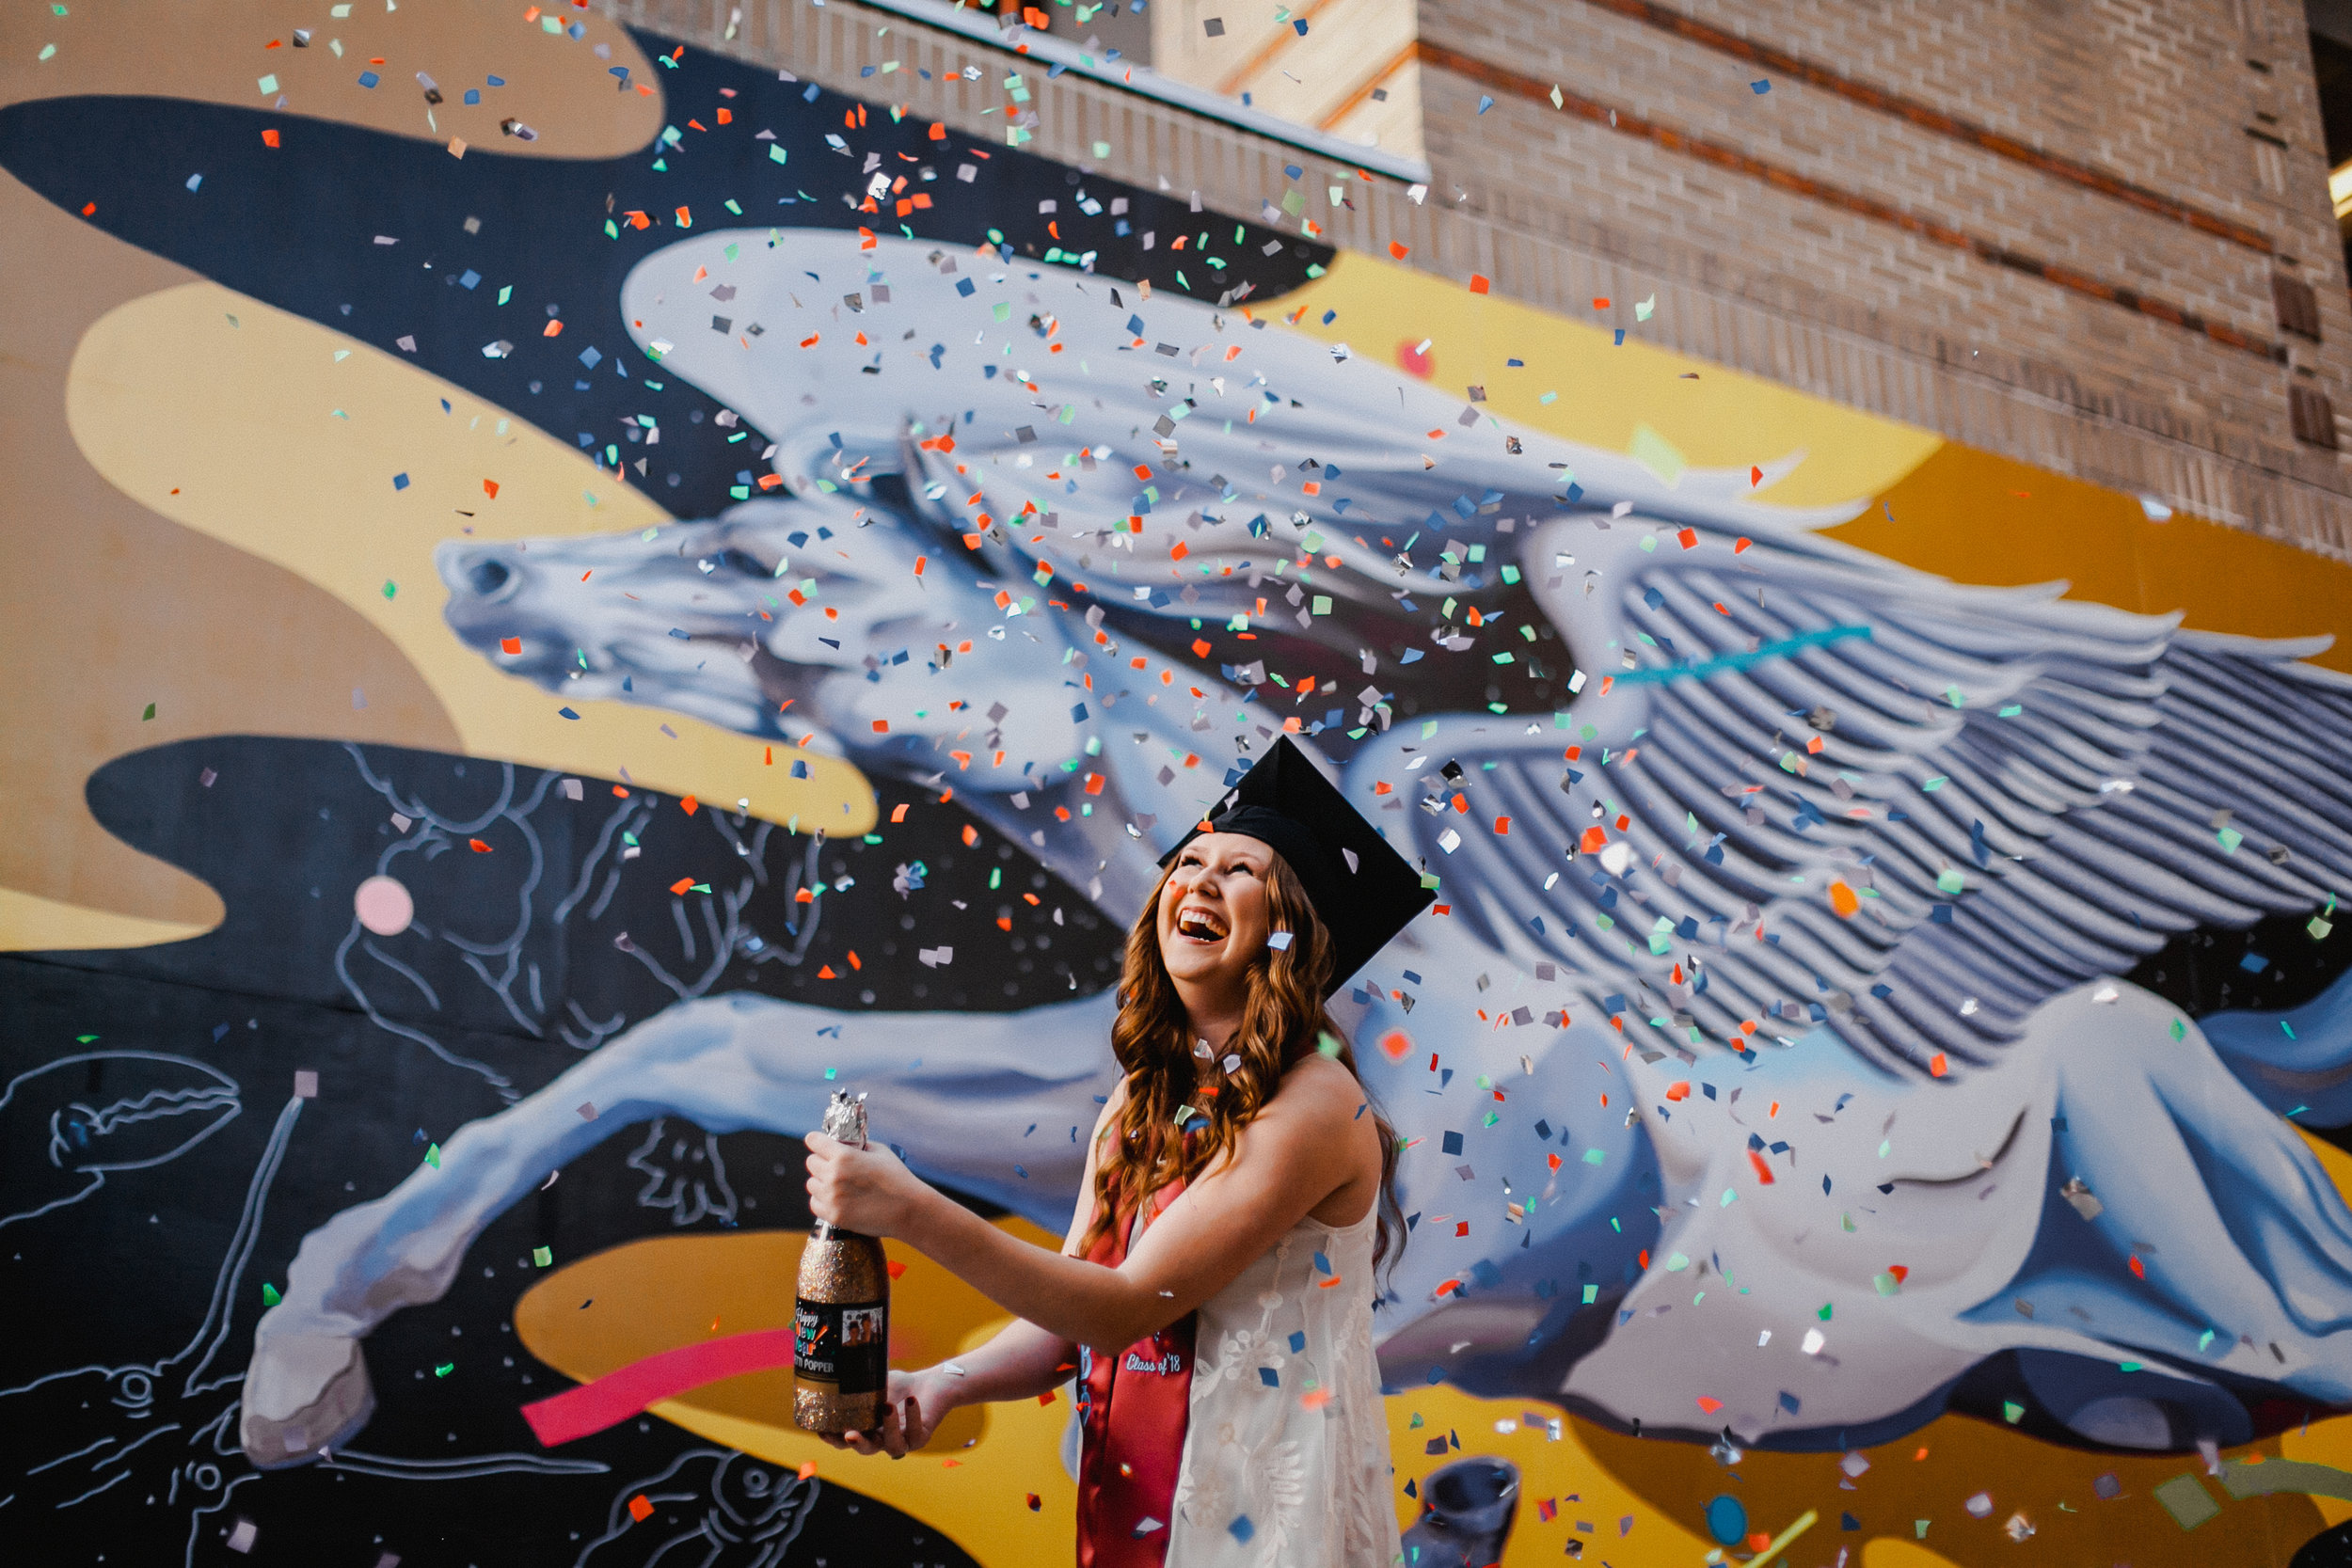 The Very Best of UCF Graduation Portraits - Fall 2018 Edition